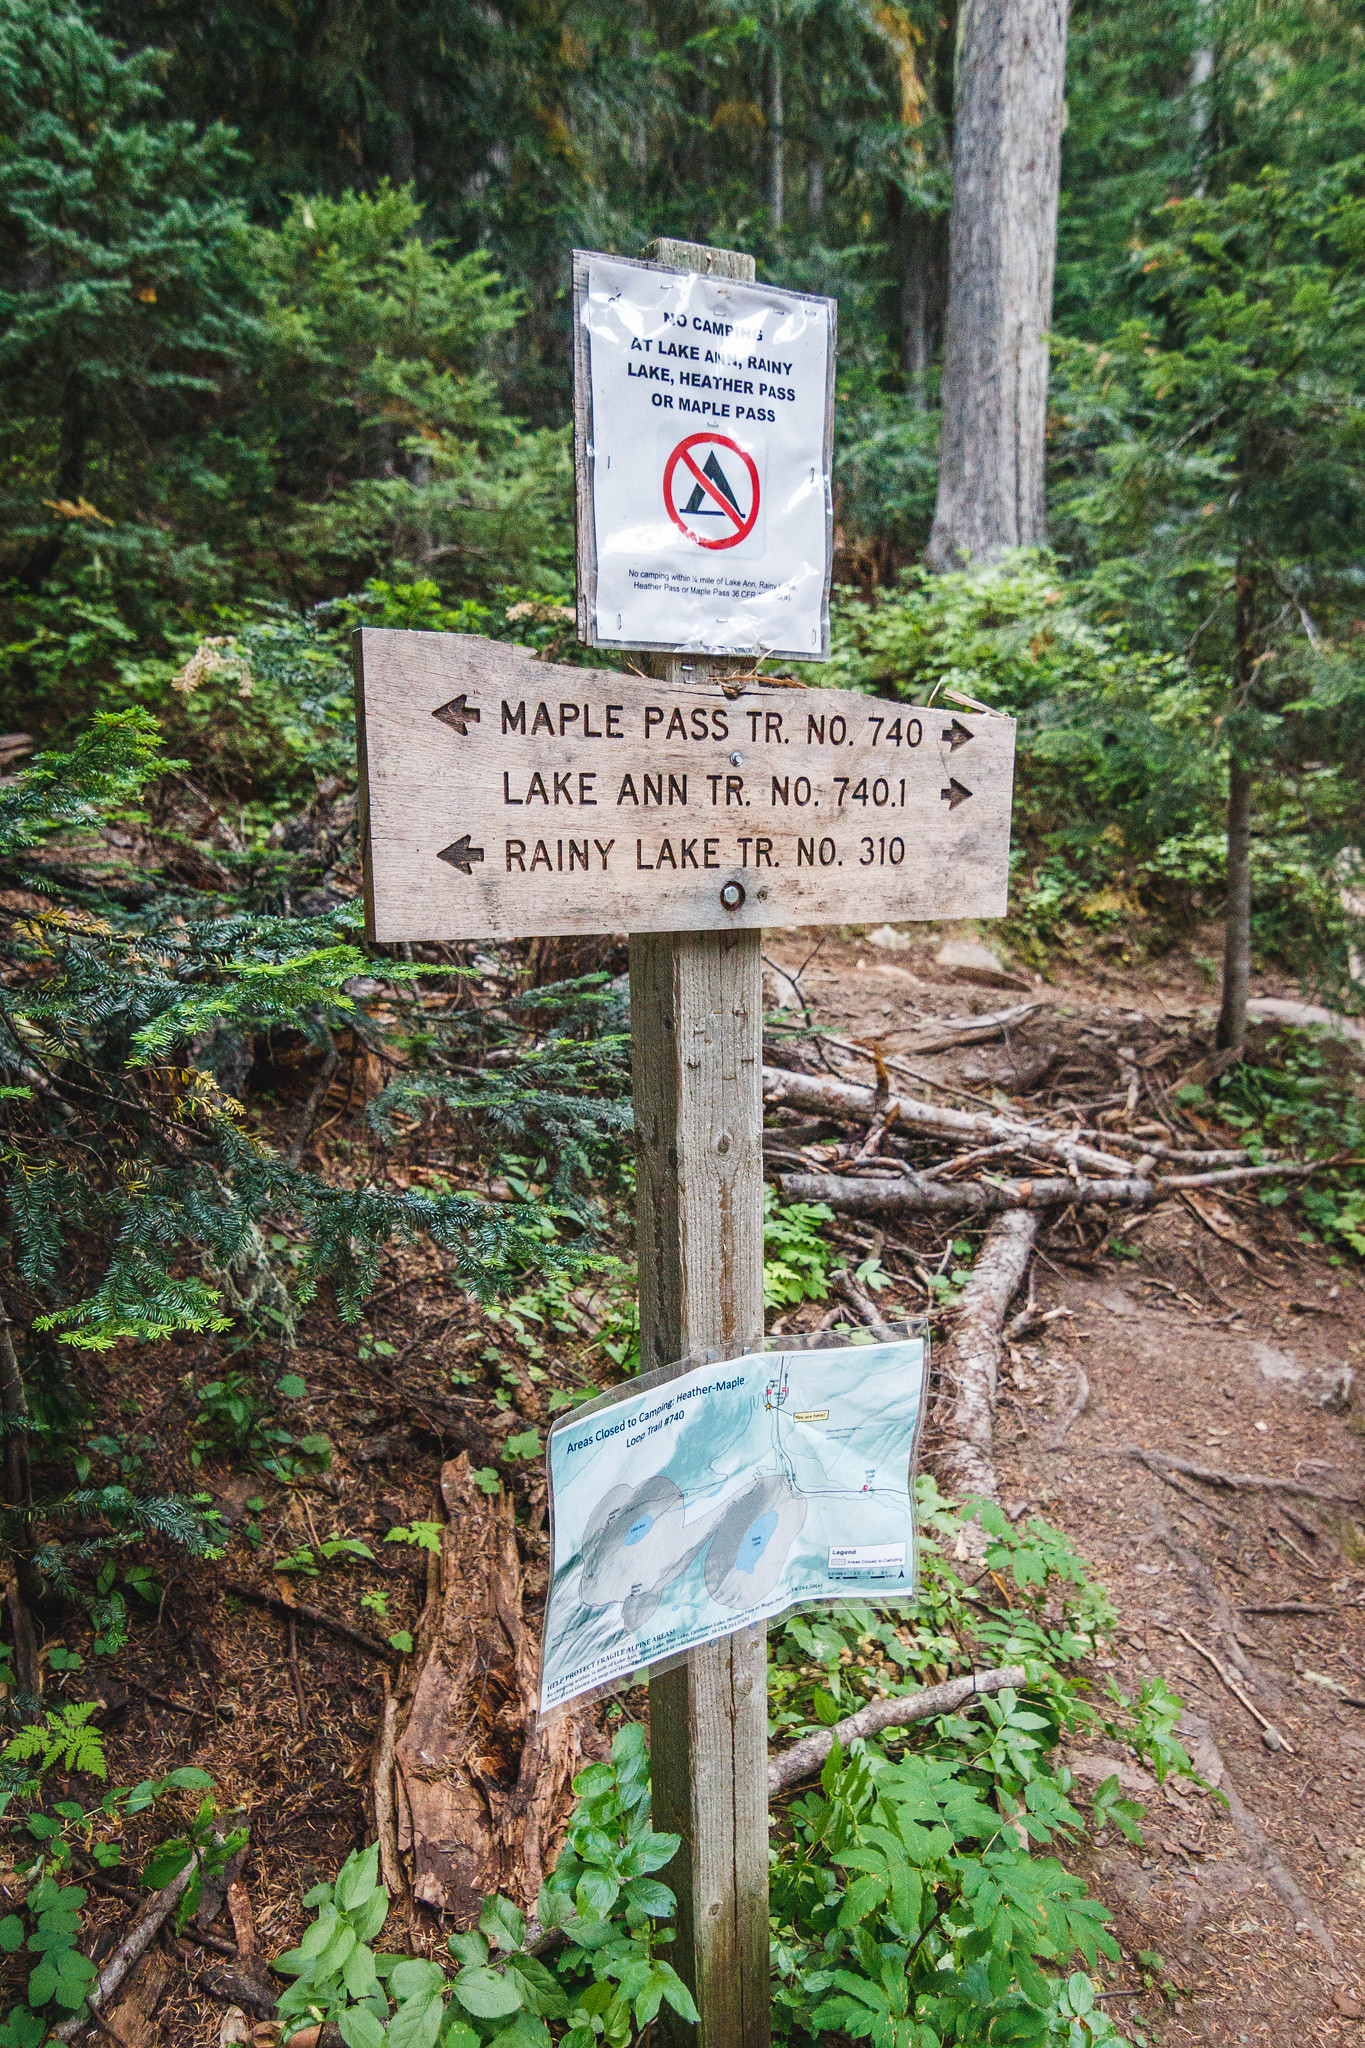 Maple Pass Loop Trail this way